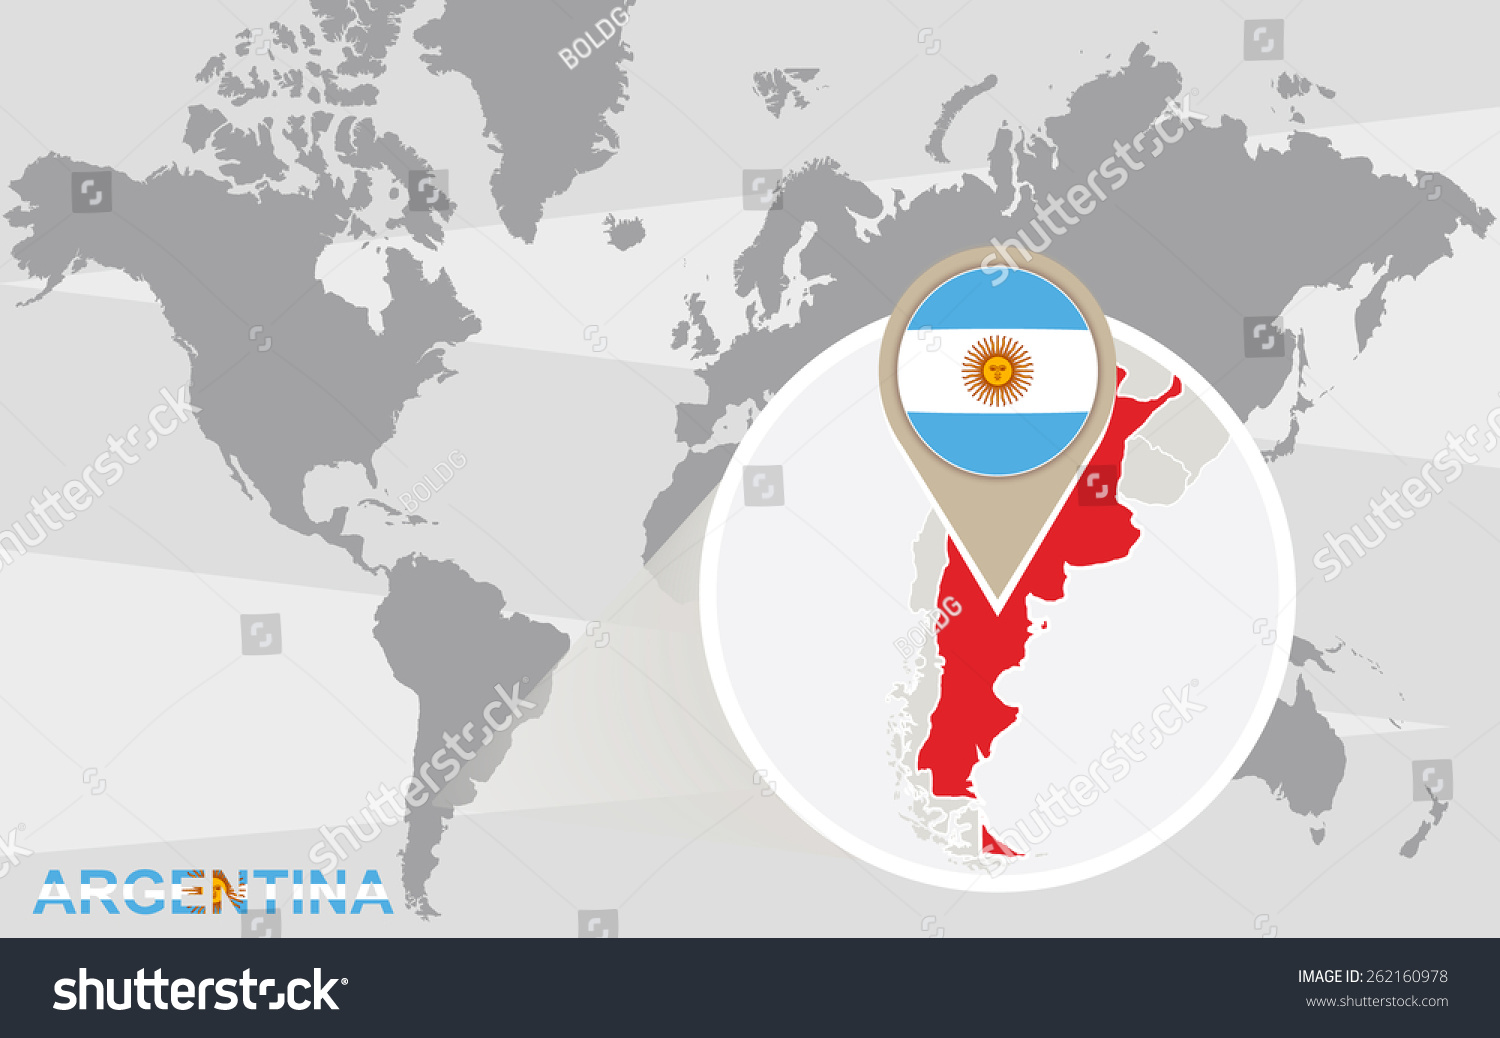 World map magnified argentina argentina flag stock vector world map with magnified argentina argentina flag and map gumiabroncs Gallery